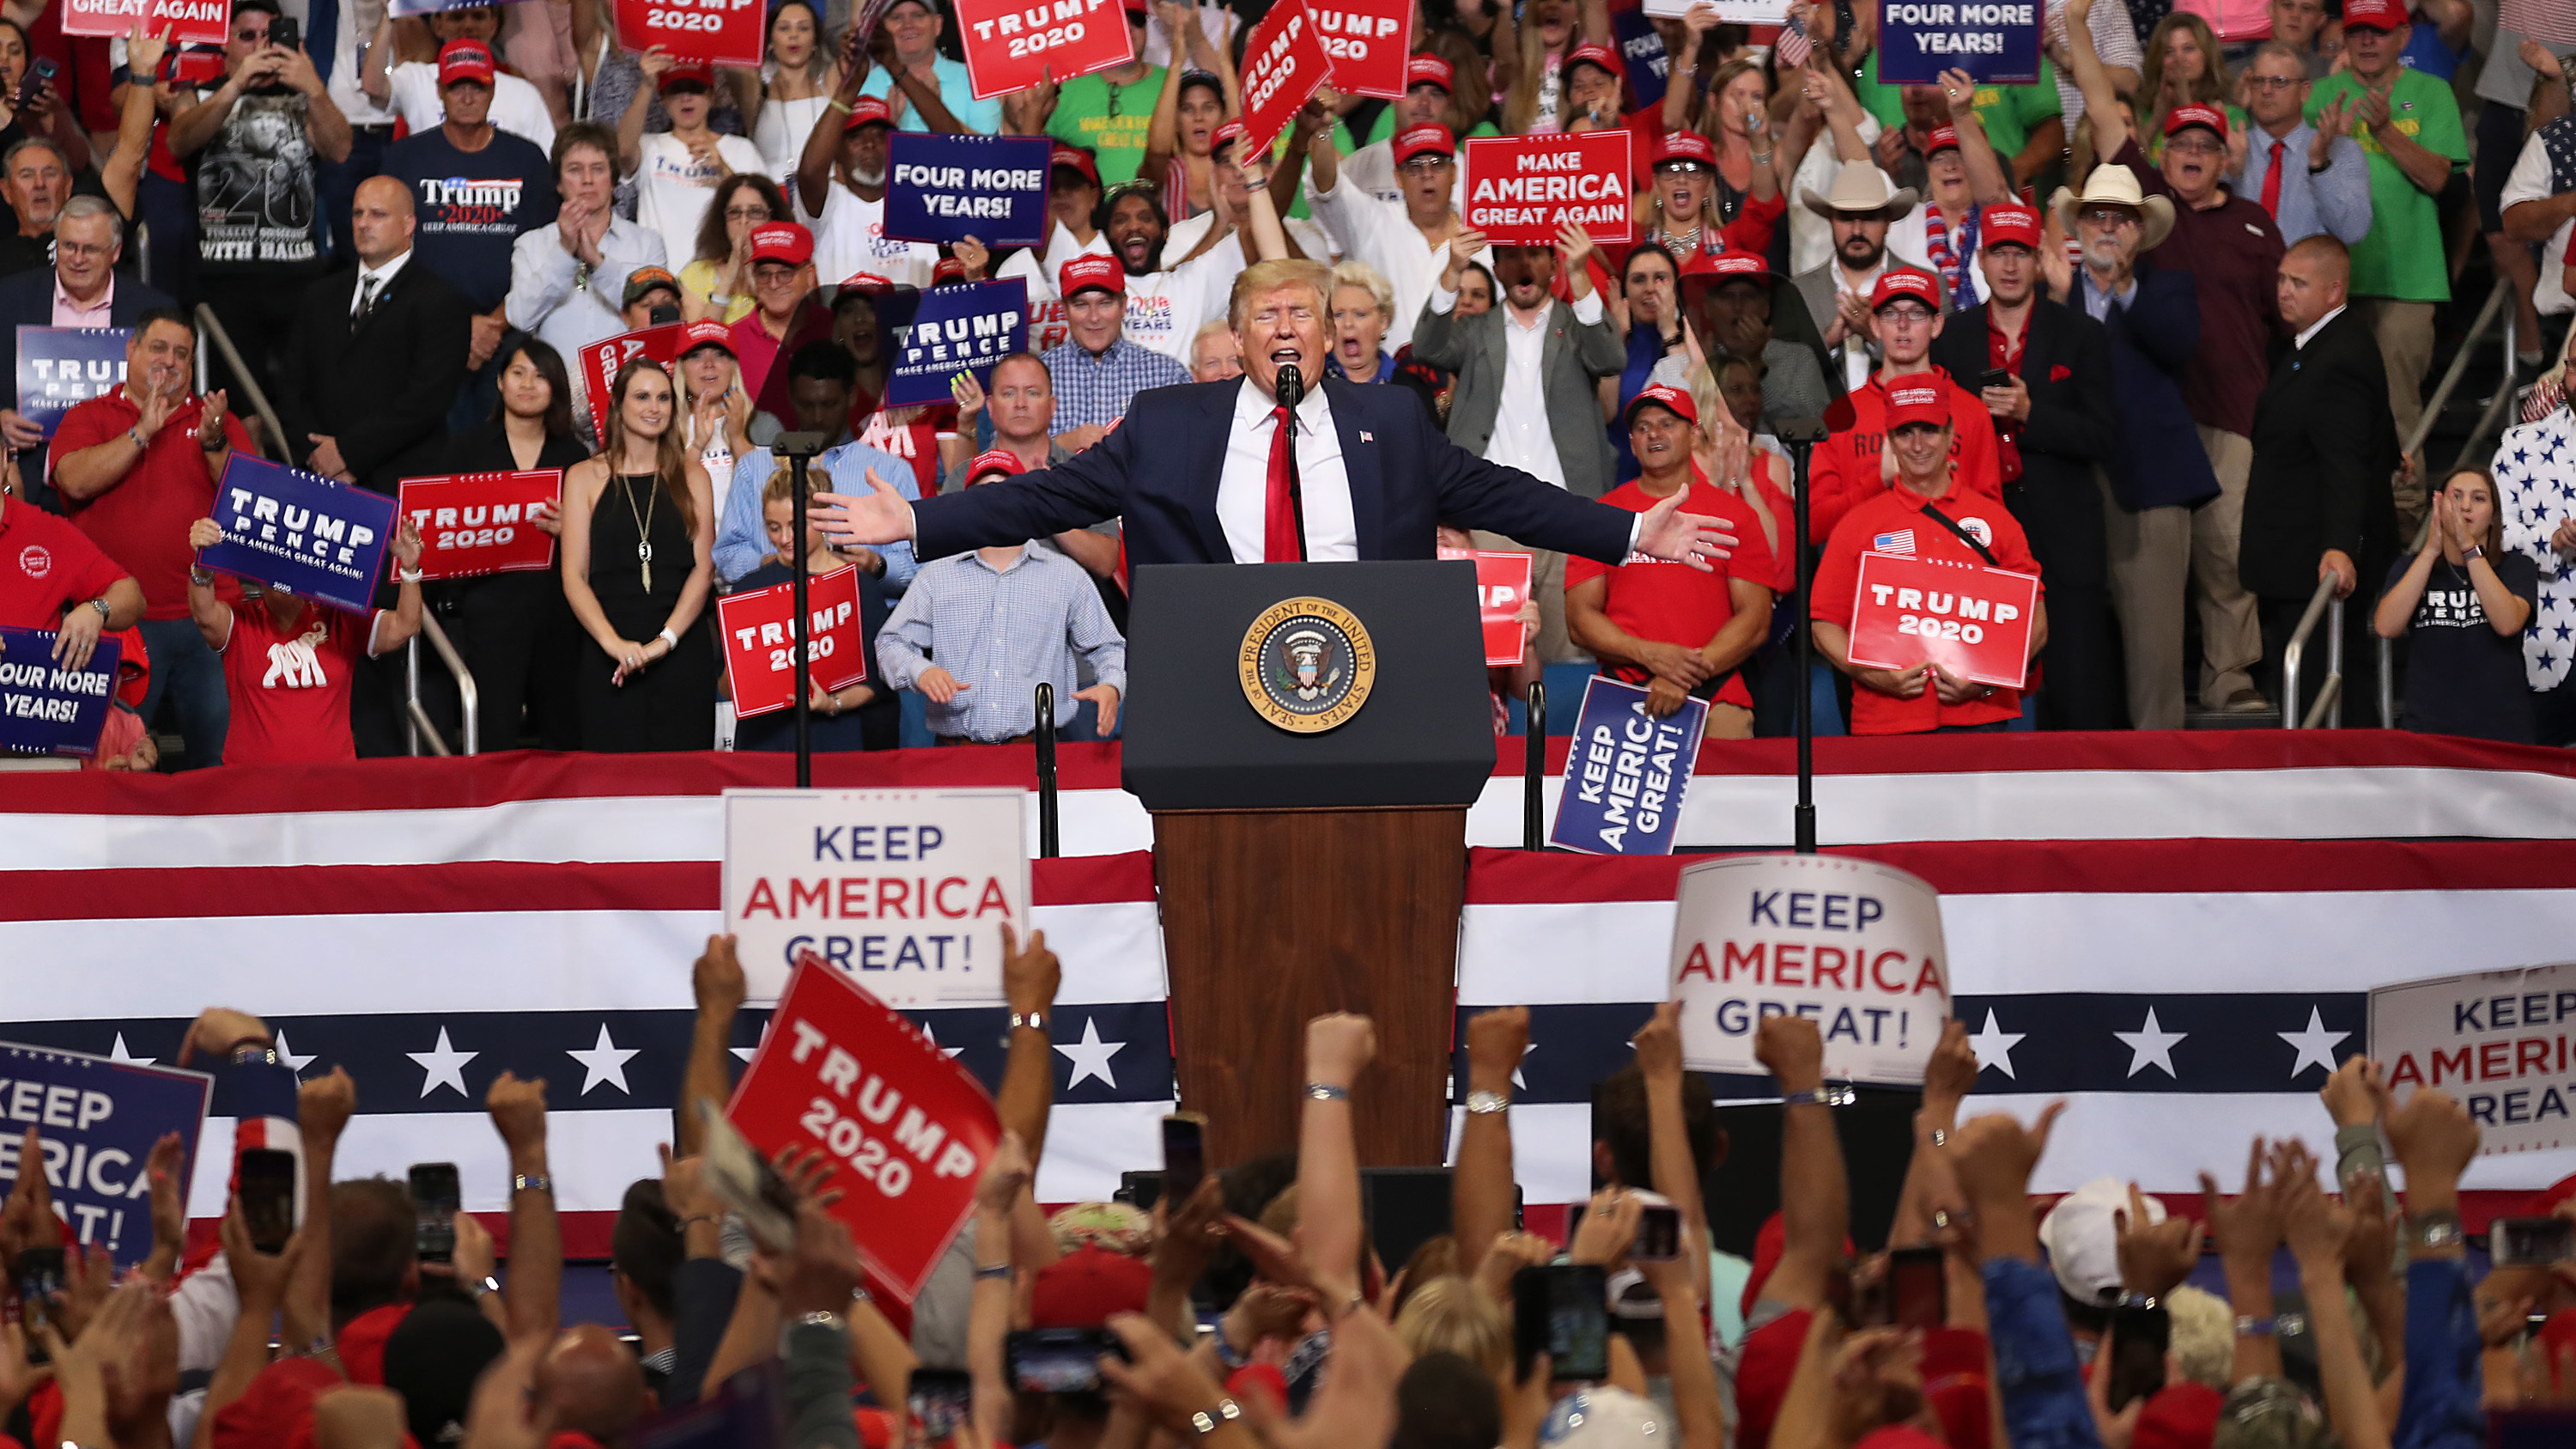 Trump Launches Reelection Bid With Promises Of Greatness And Familiar Grievances